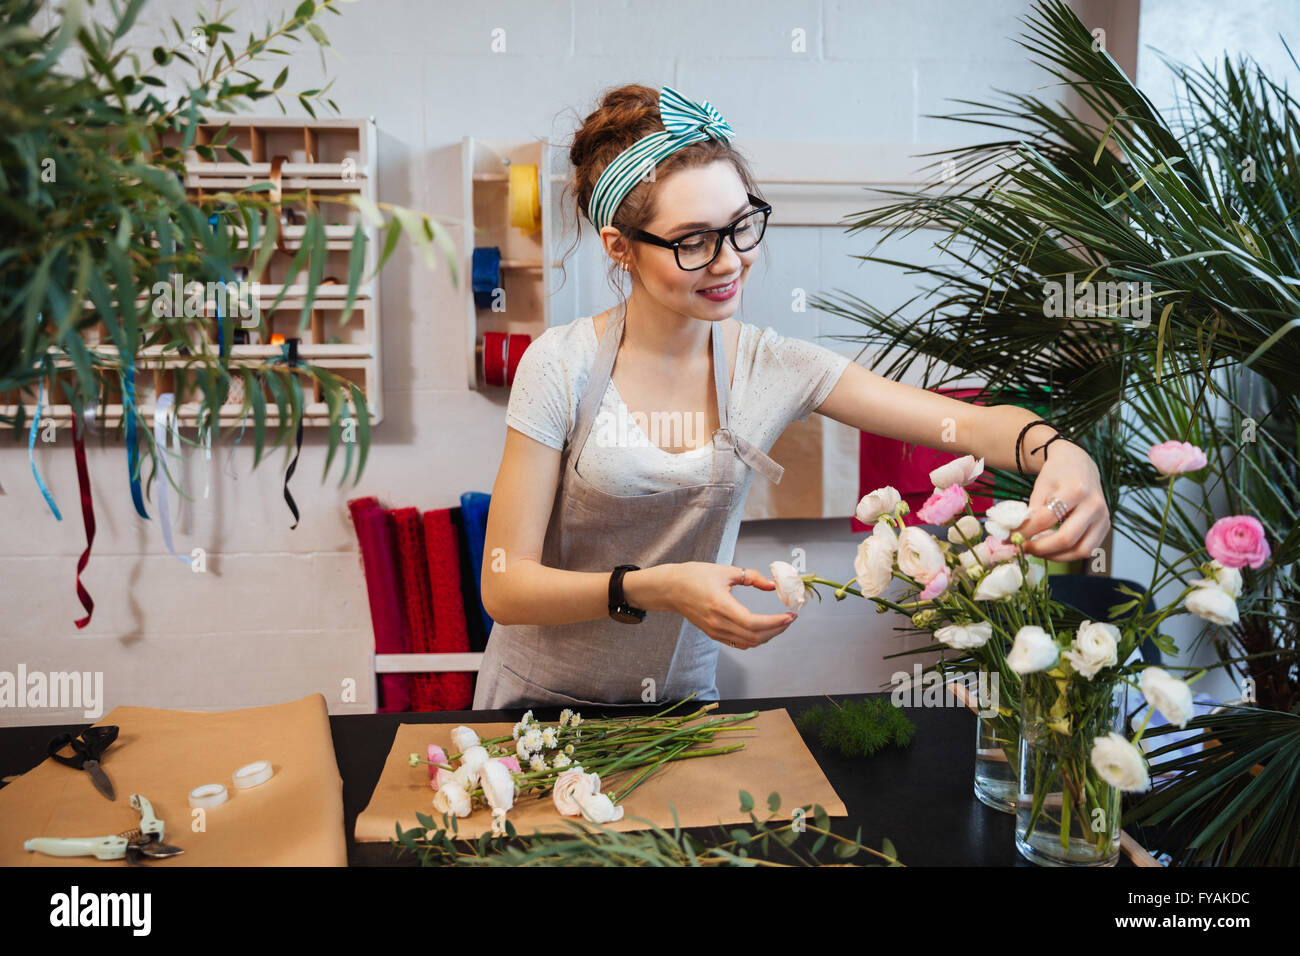 Smiling attractive young woman florist working and making bouquet in flower shop - Stock Image